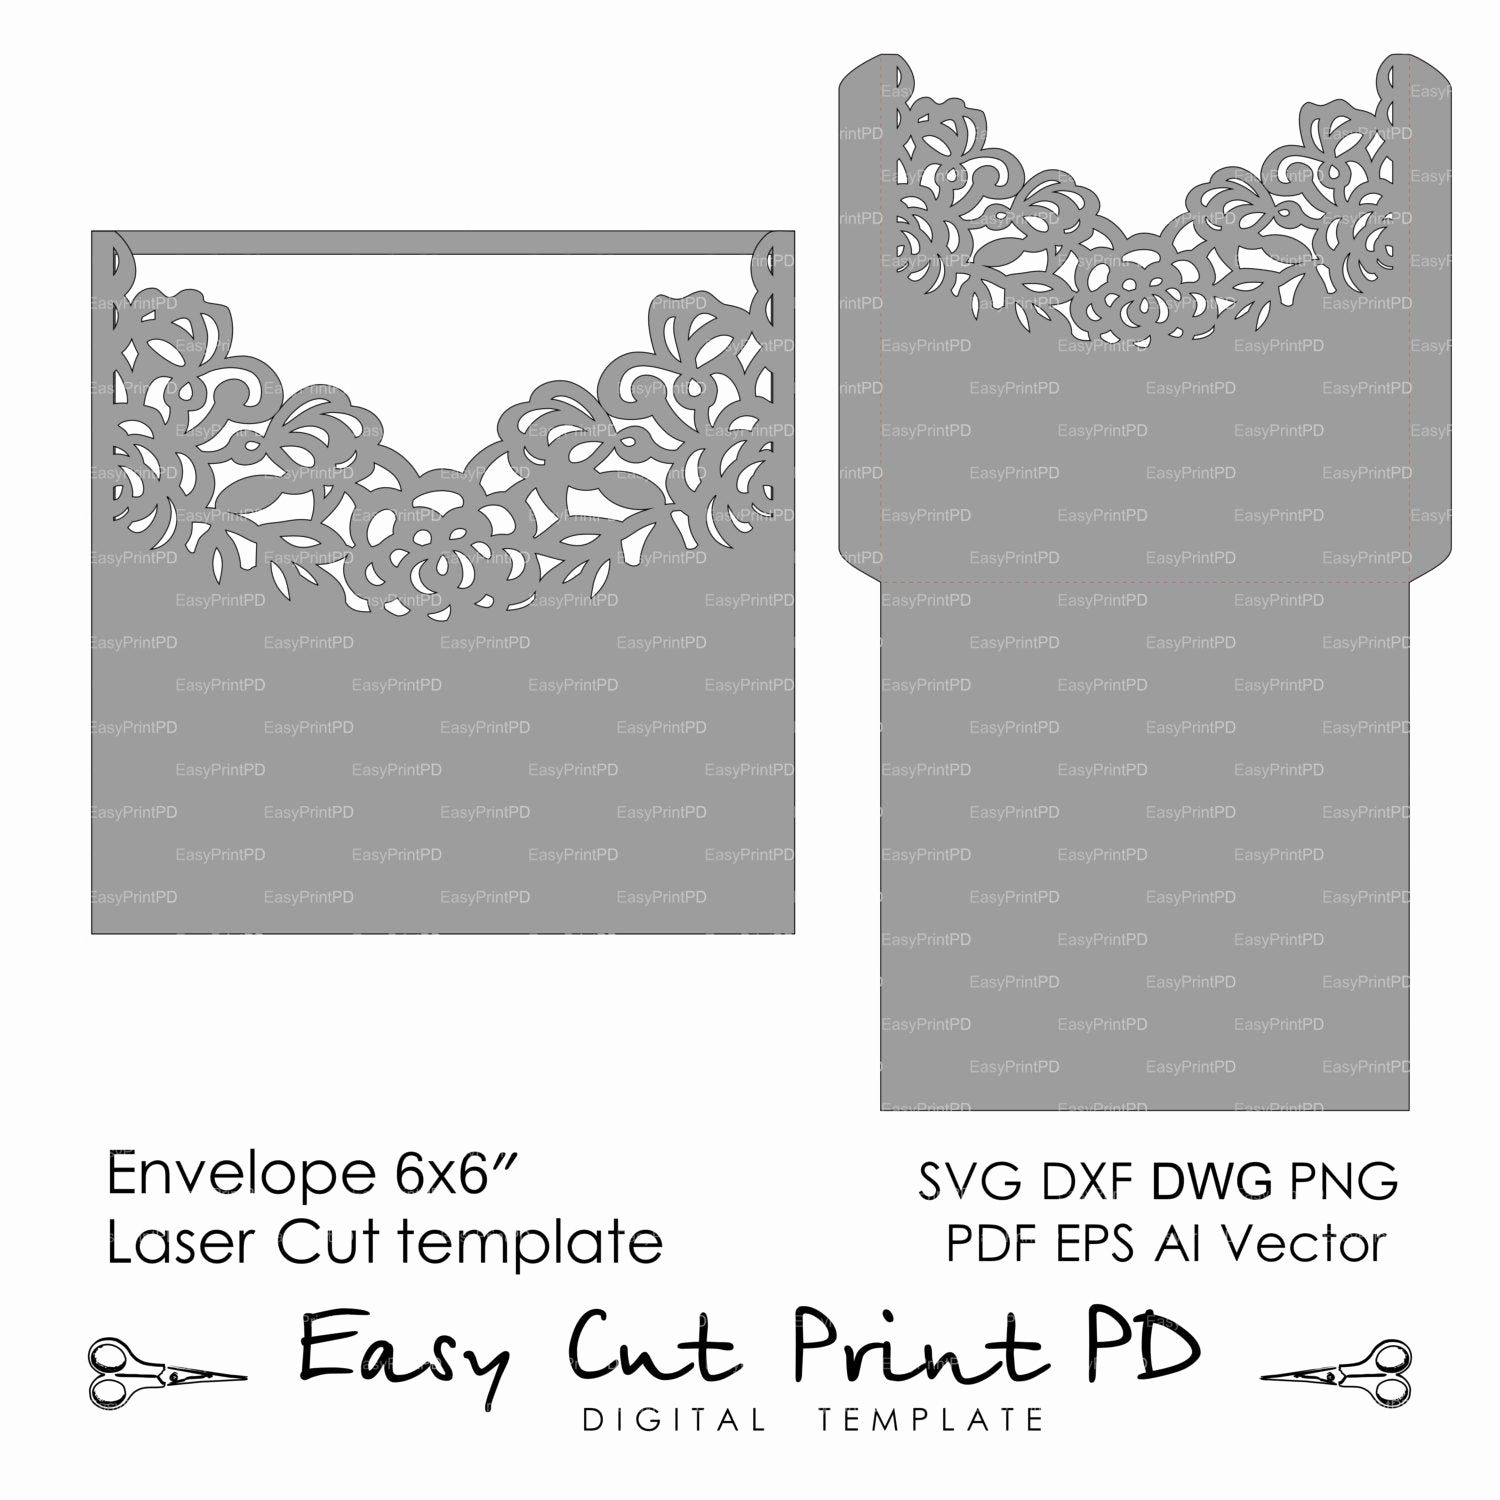 Wedding Invitation Envelope Templates Awesome Wedding Invitation Envelope Pattern Template Roses Lace Folds